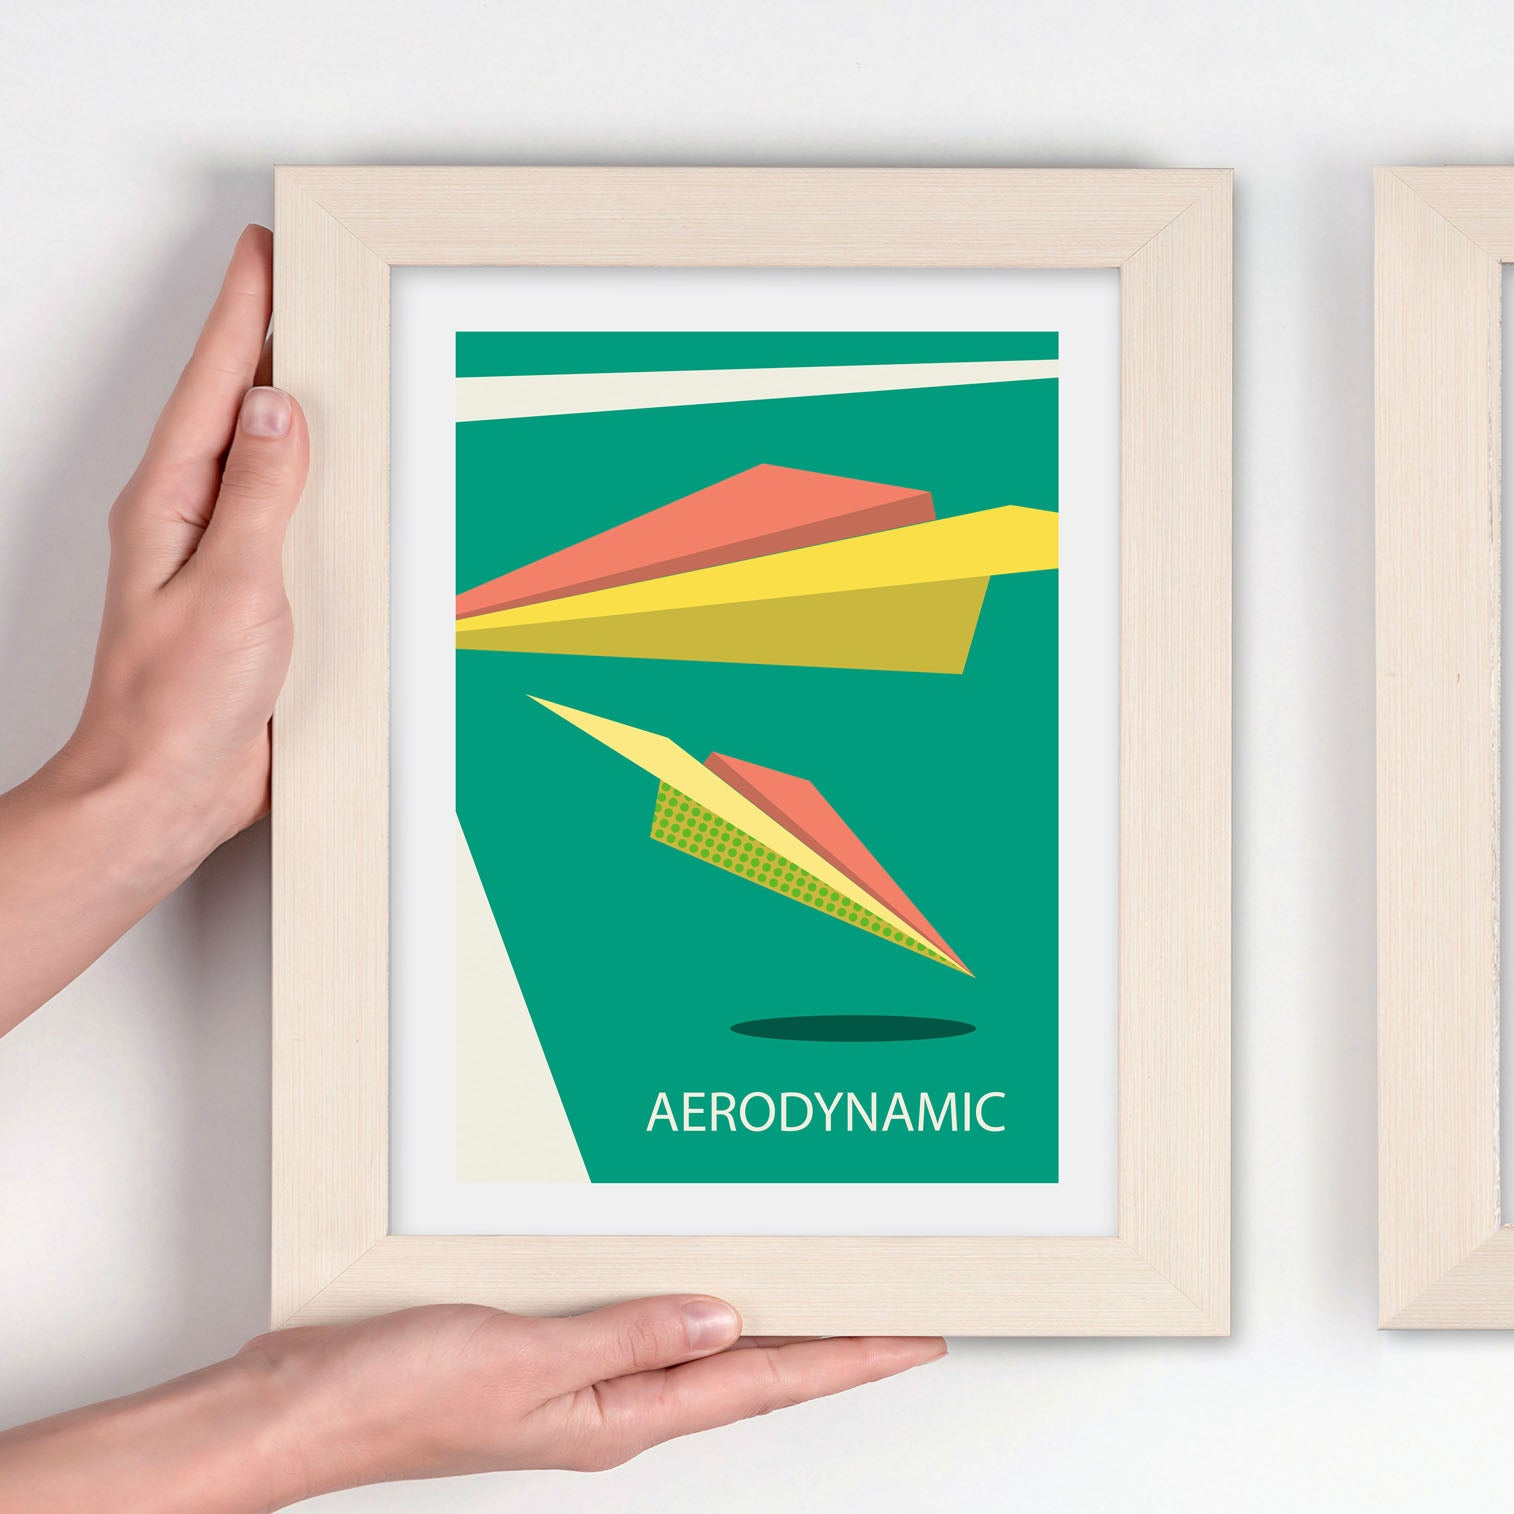 AERODYNAMIC! - crisp paper aeroplane/airplane design with clean lines on a green background art print - 'Unframed'